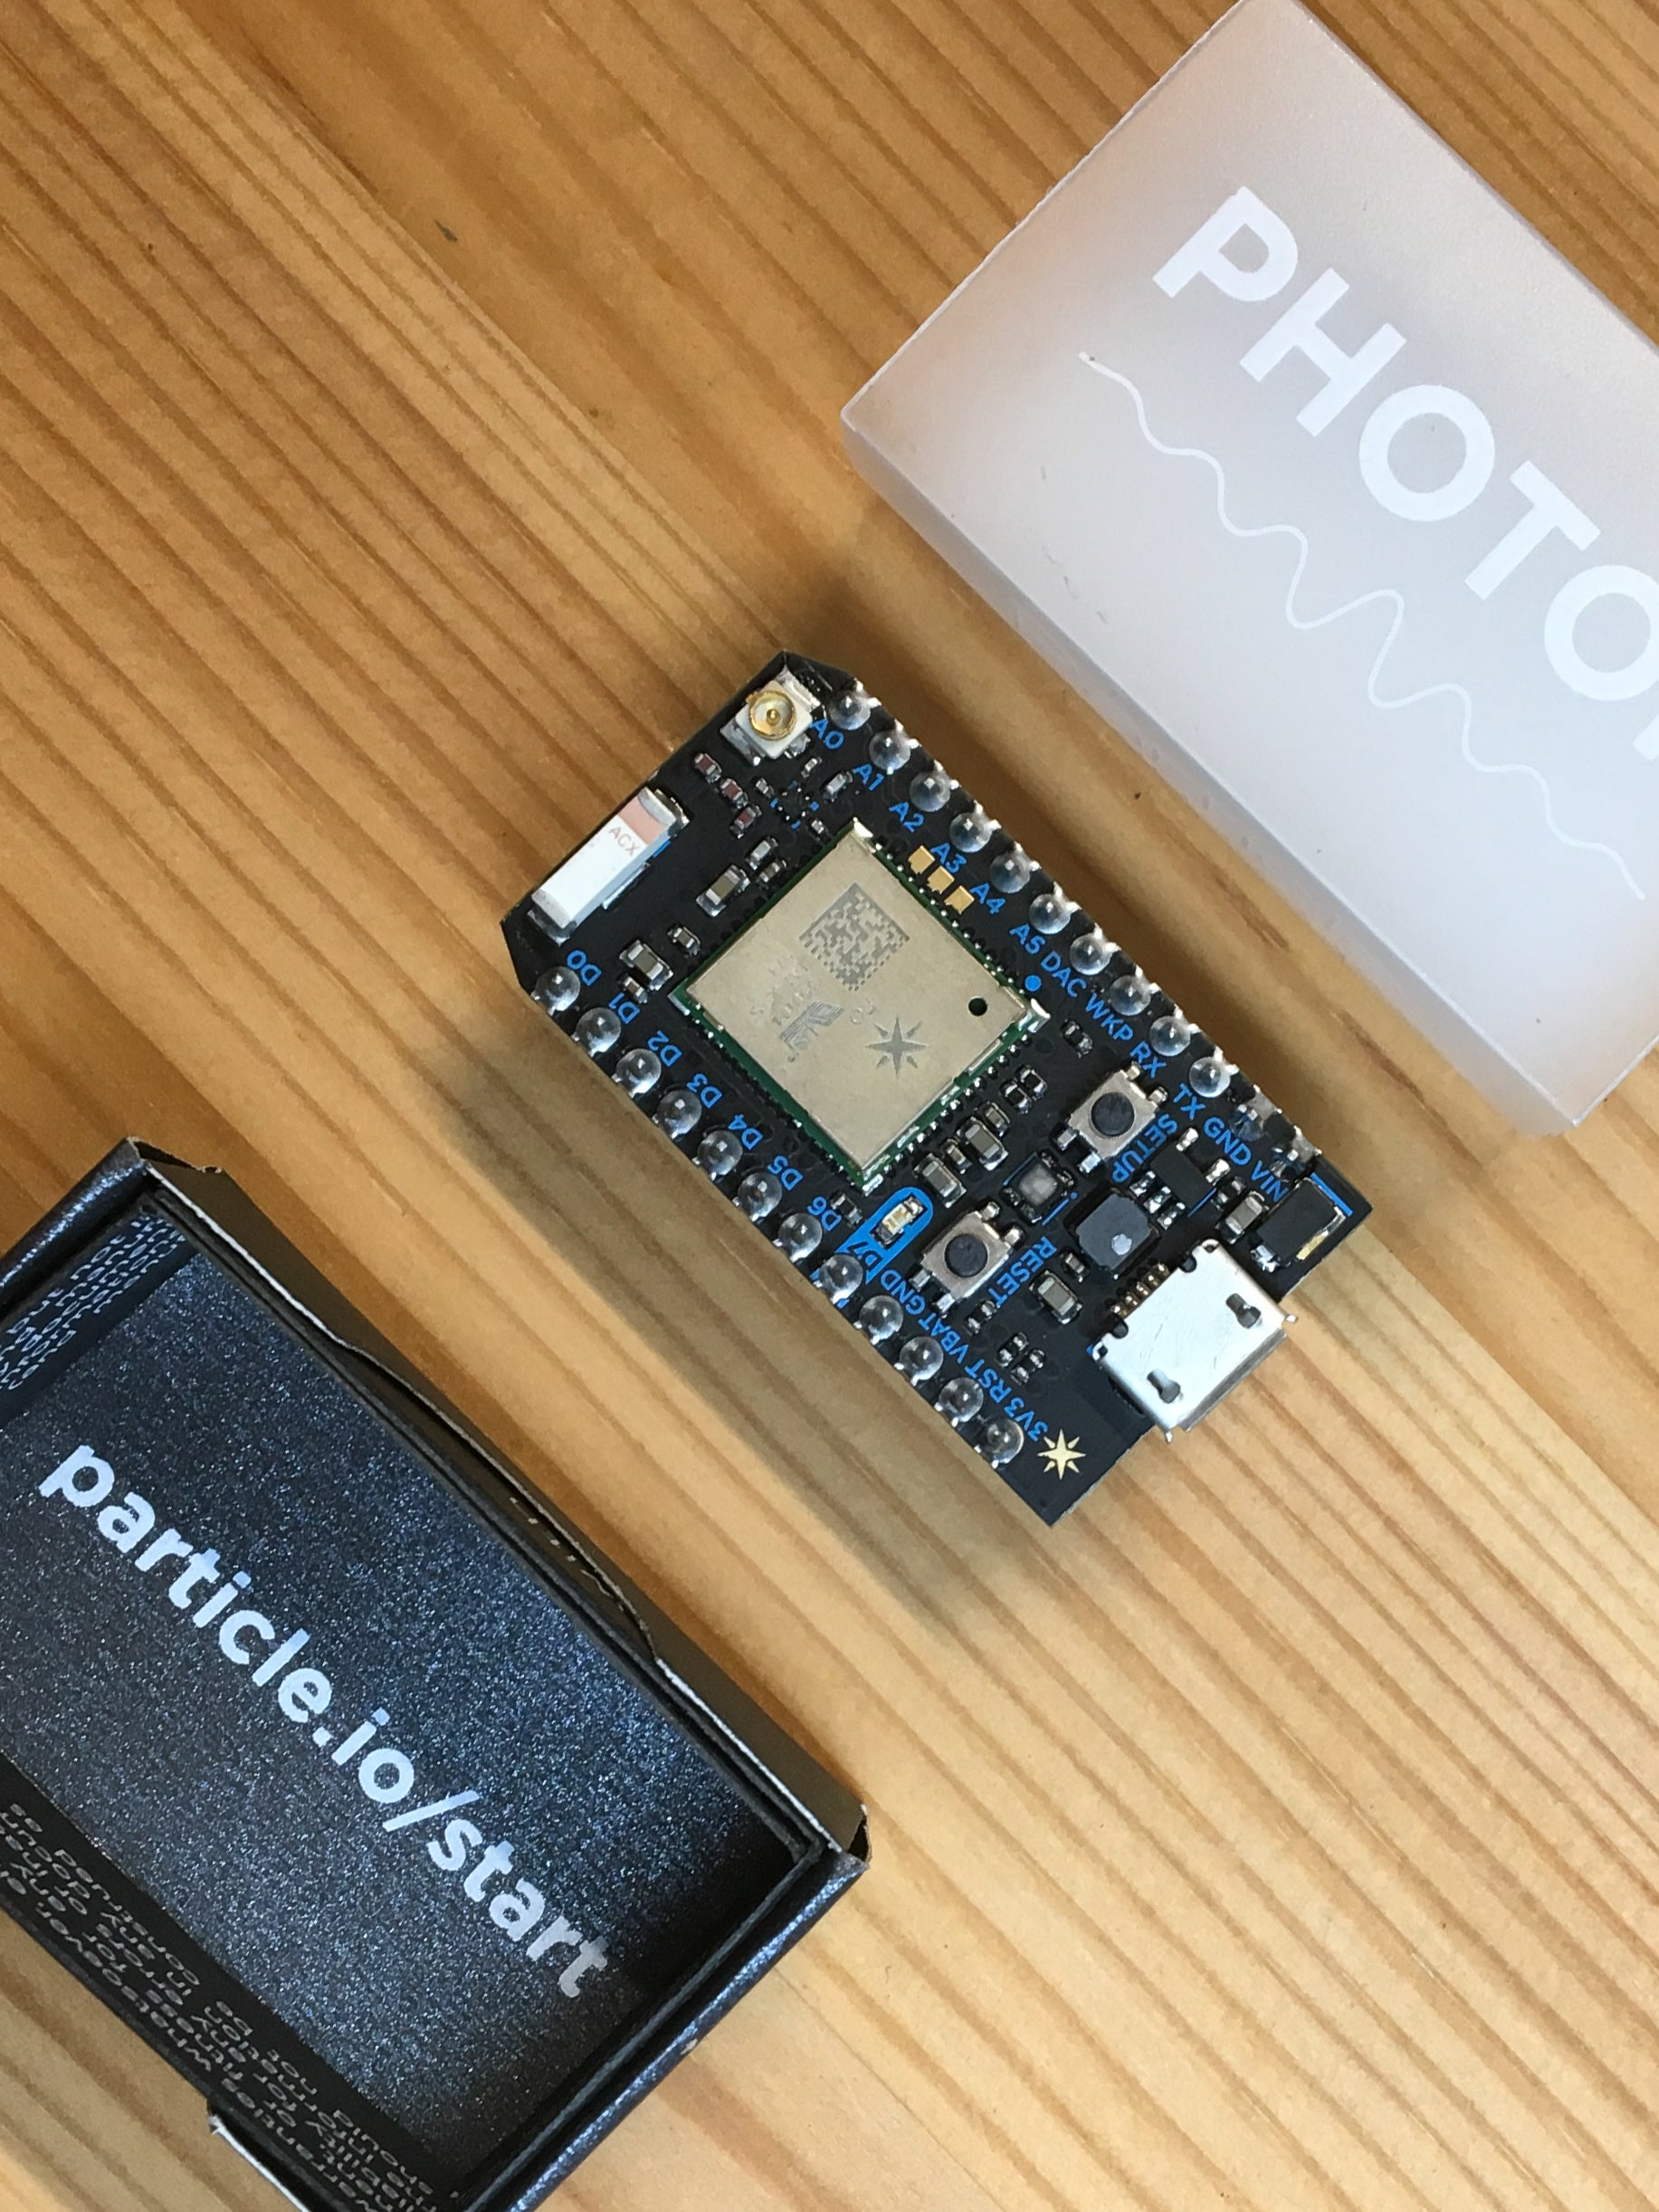 Particle Photon - IoT Development Board with Particle Cloud - Server On The Move